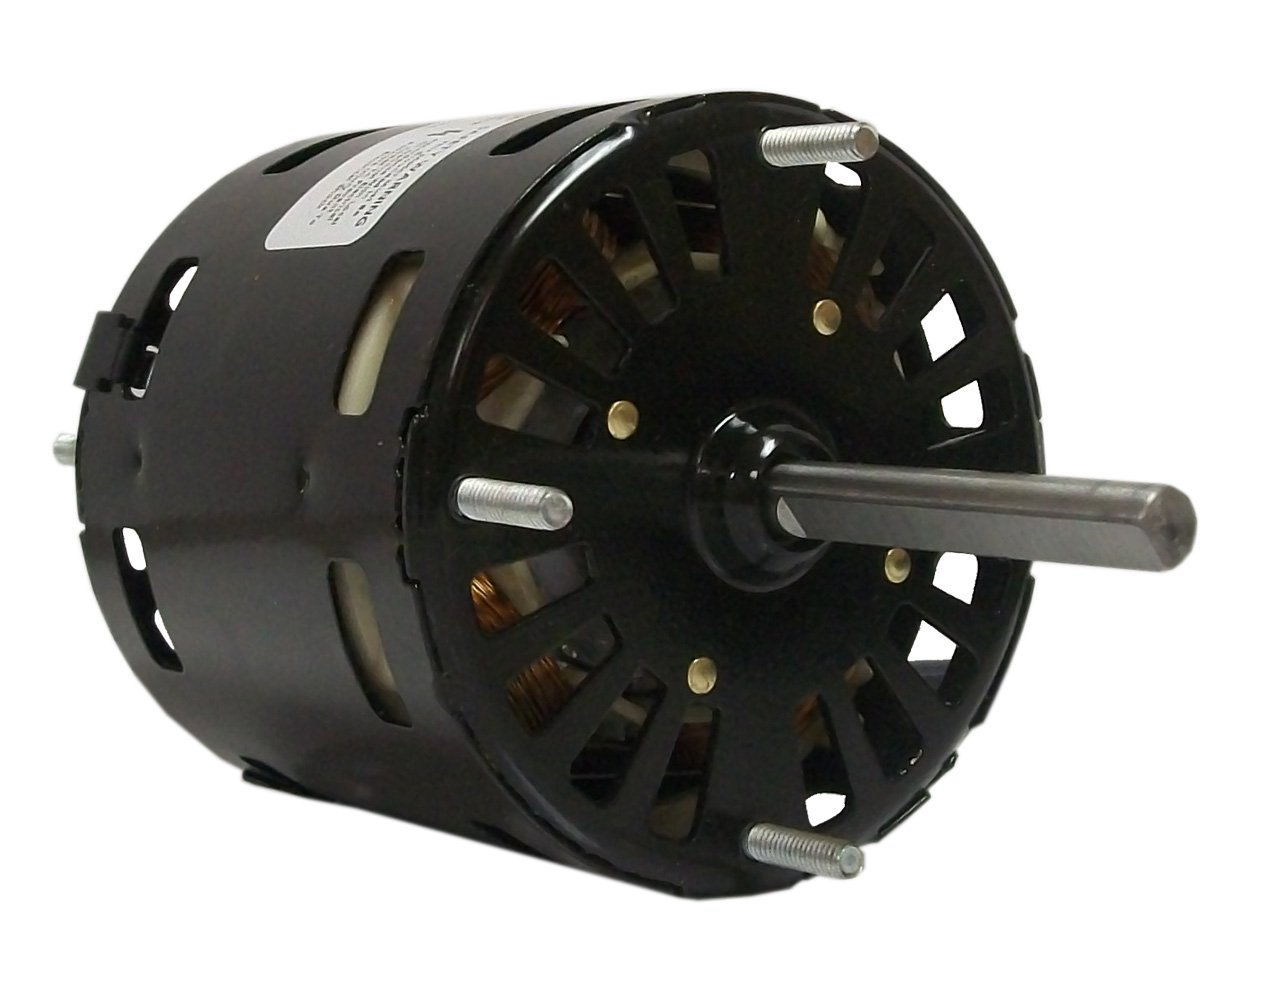 Fasco D1103 3.3-Inch Diameter Shaded Pole Motor, 1/20 HP, 208-230 Volts, 1500 RPM, 1 Speed, 1.15 Amps, CCW Rotation, Sleeve Bearing